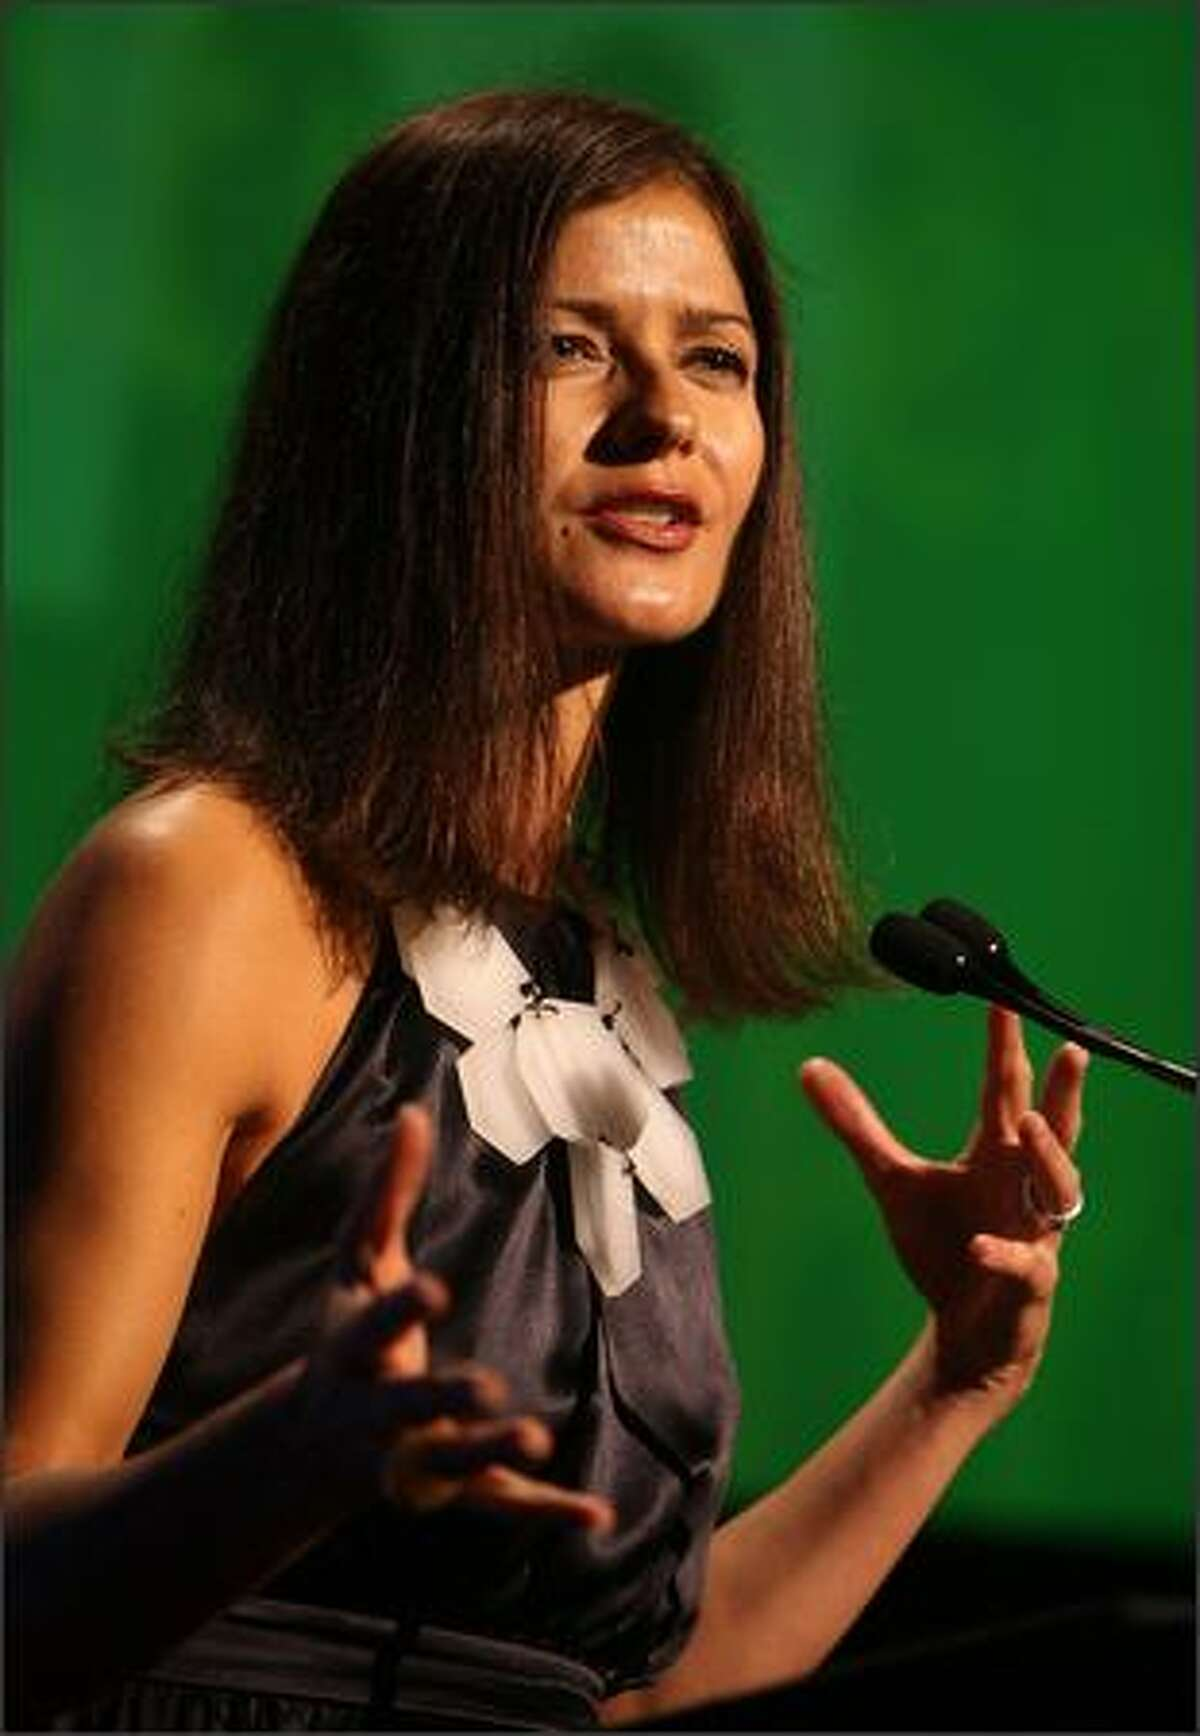 Actress Jill Hennessy speaks on stage during the 29th annual Salute to Women in Sports Awards presented by the Women's Sports Foundation at The Waldorf-Astoria Hotel in New York City.